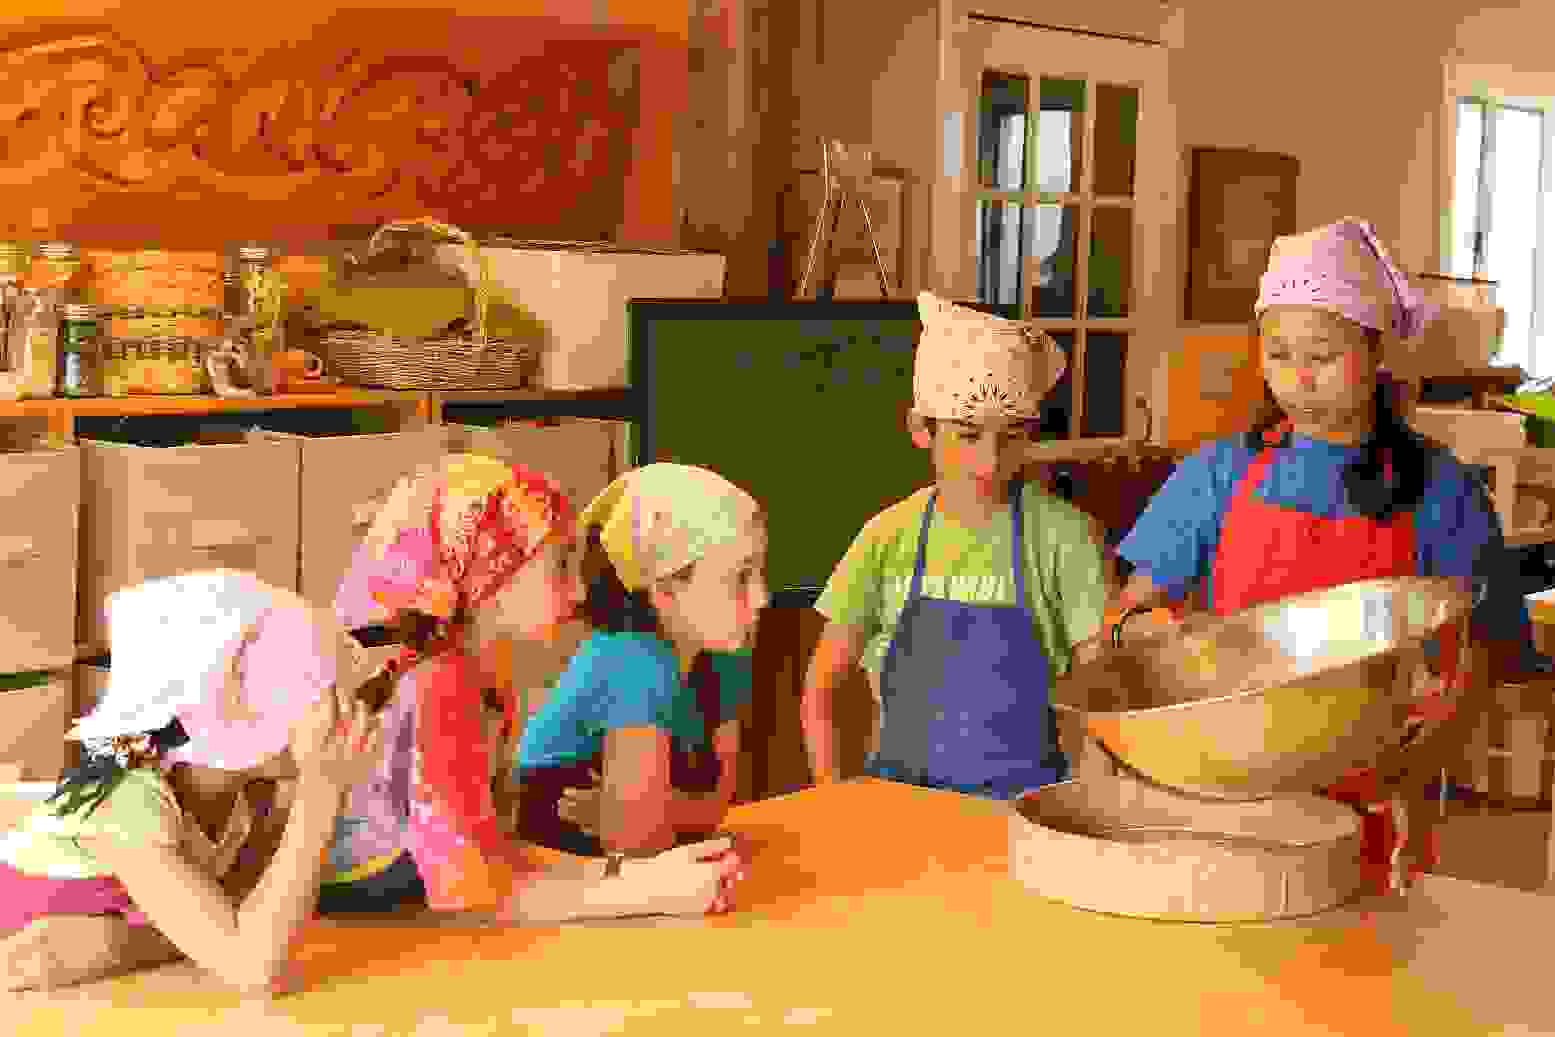 Every third-grade class visits a farm in Upstate New York for a week in the spring as part of a farming main lesson block. While there, some students work in the kitchen helping to make fresh bread.